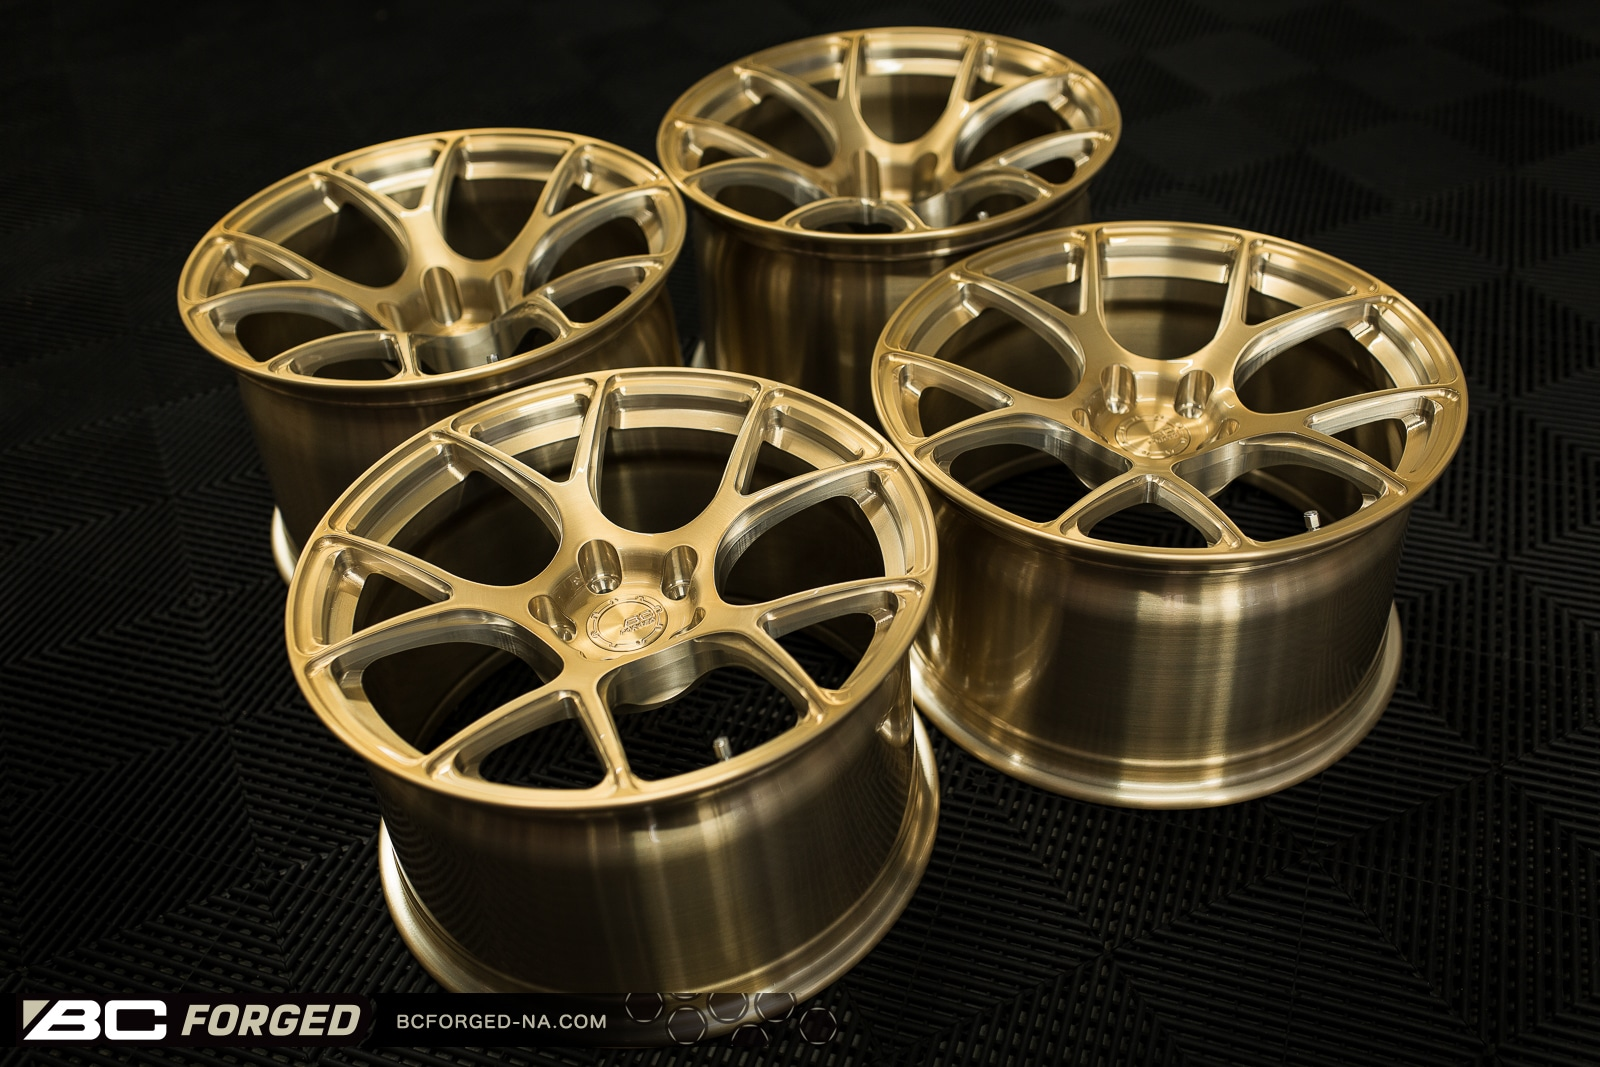 bc-forged-rz05-forged-monoblock-concave-brushed-royal-gold-wheels.jpg